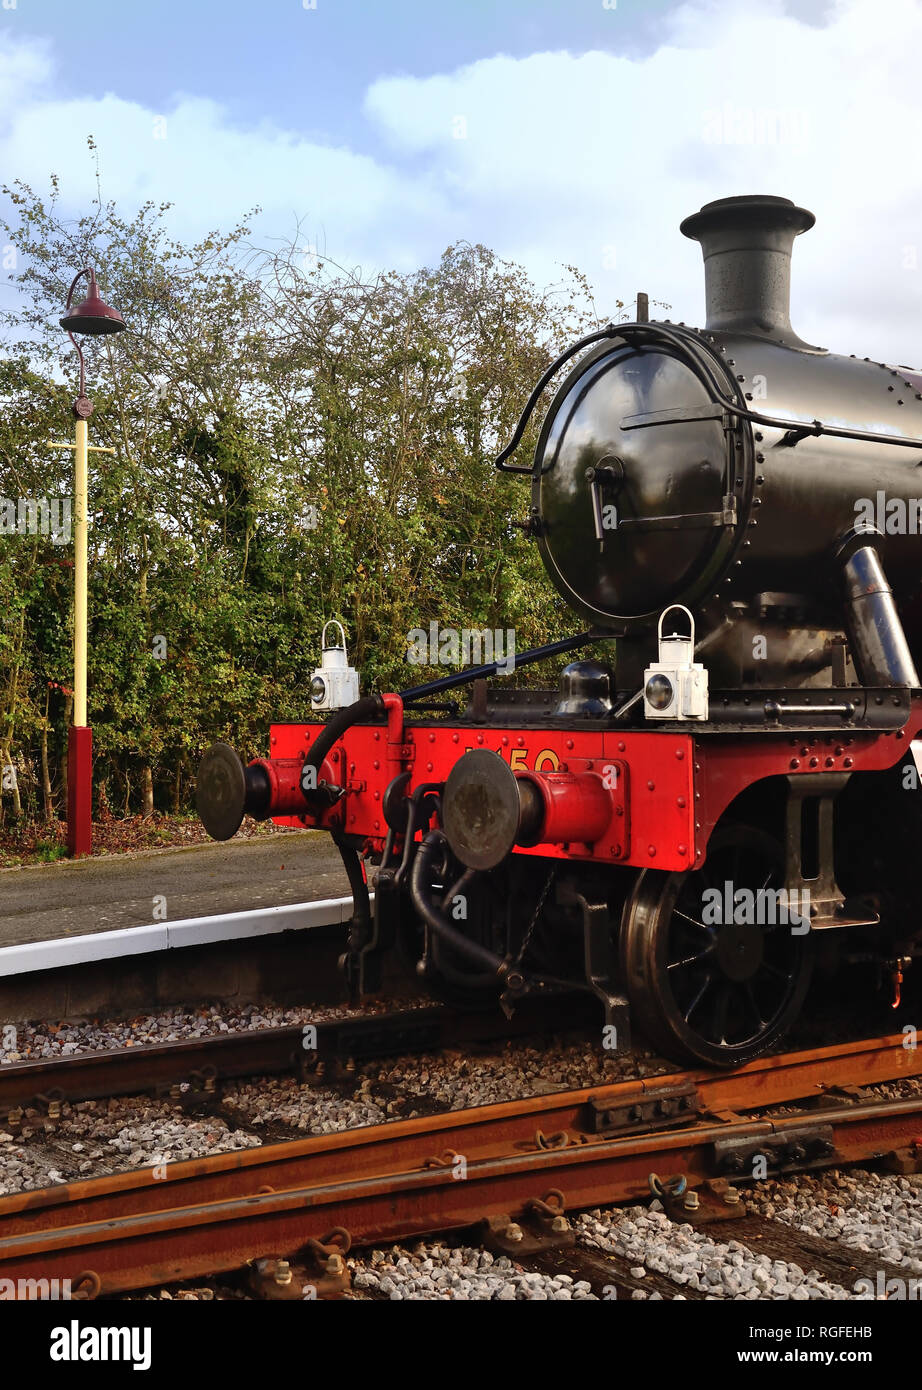 The front of GWR tank No 5521, seen here as No L150, waiting to leave Avon Riverside station, with headlamps indicating an express train. - Stock Image